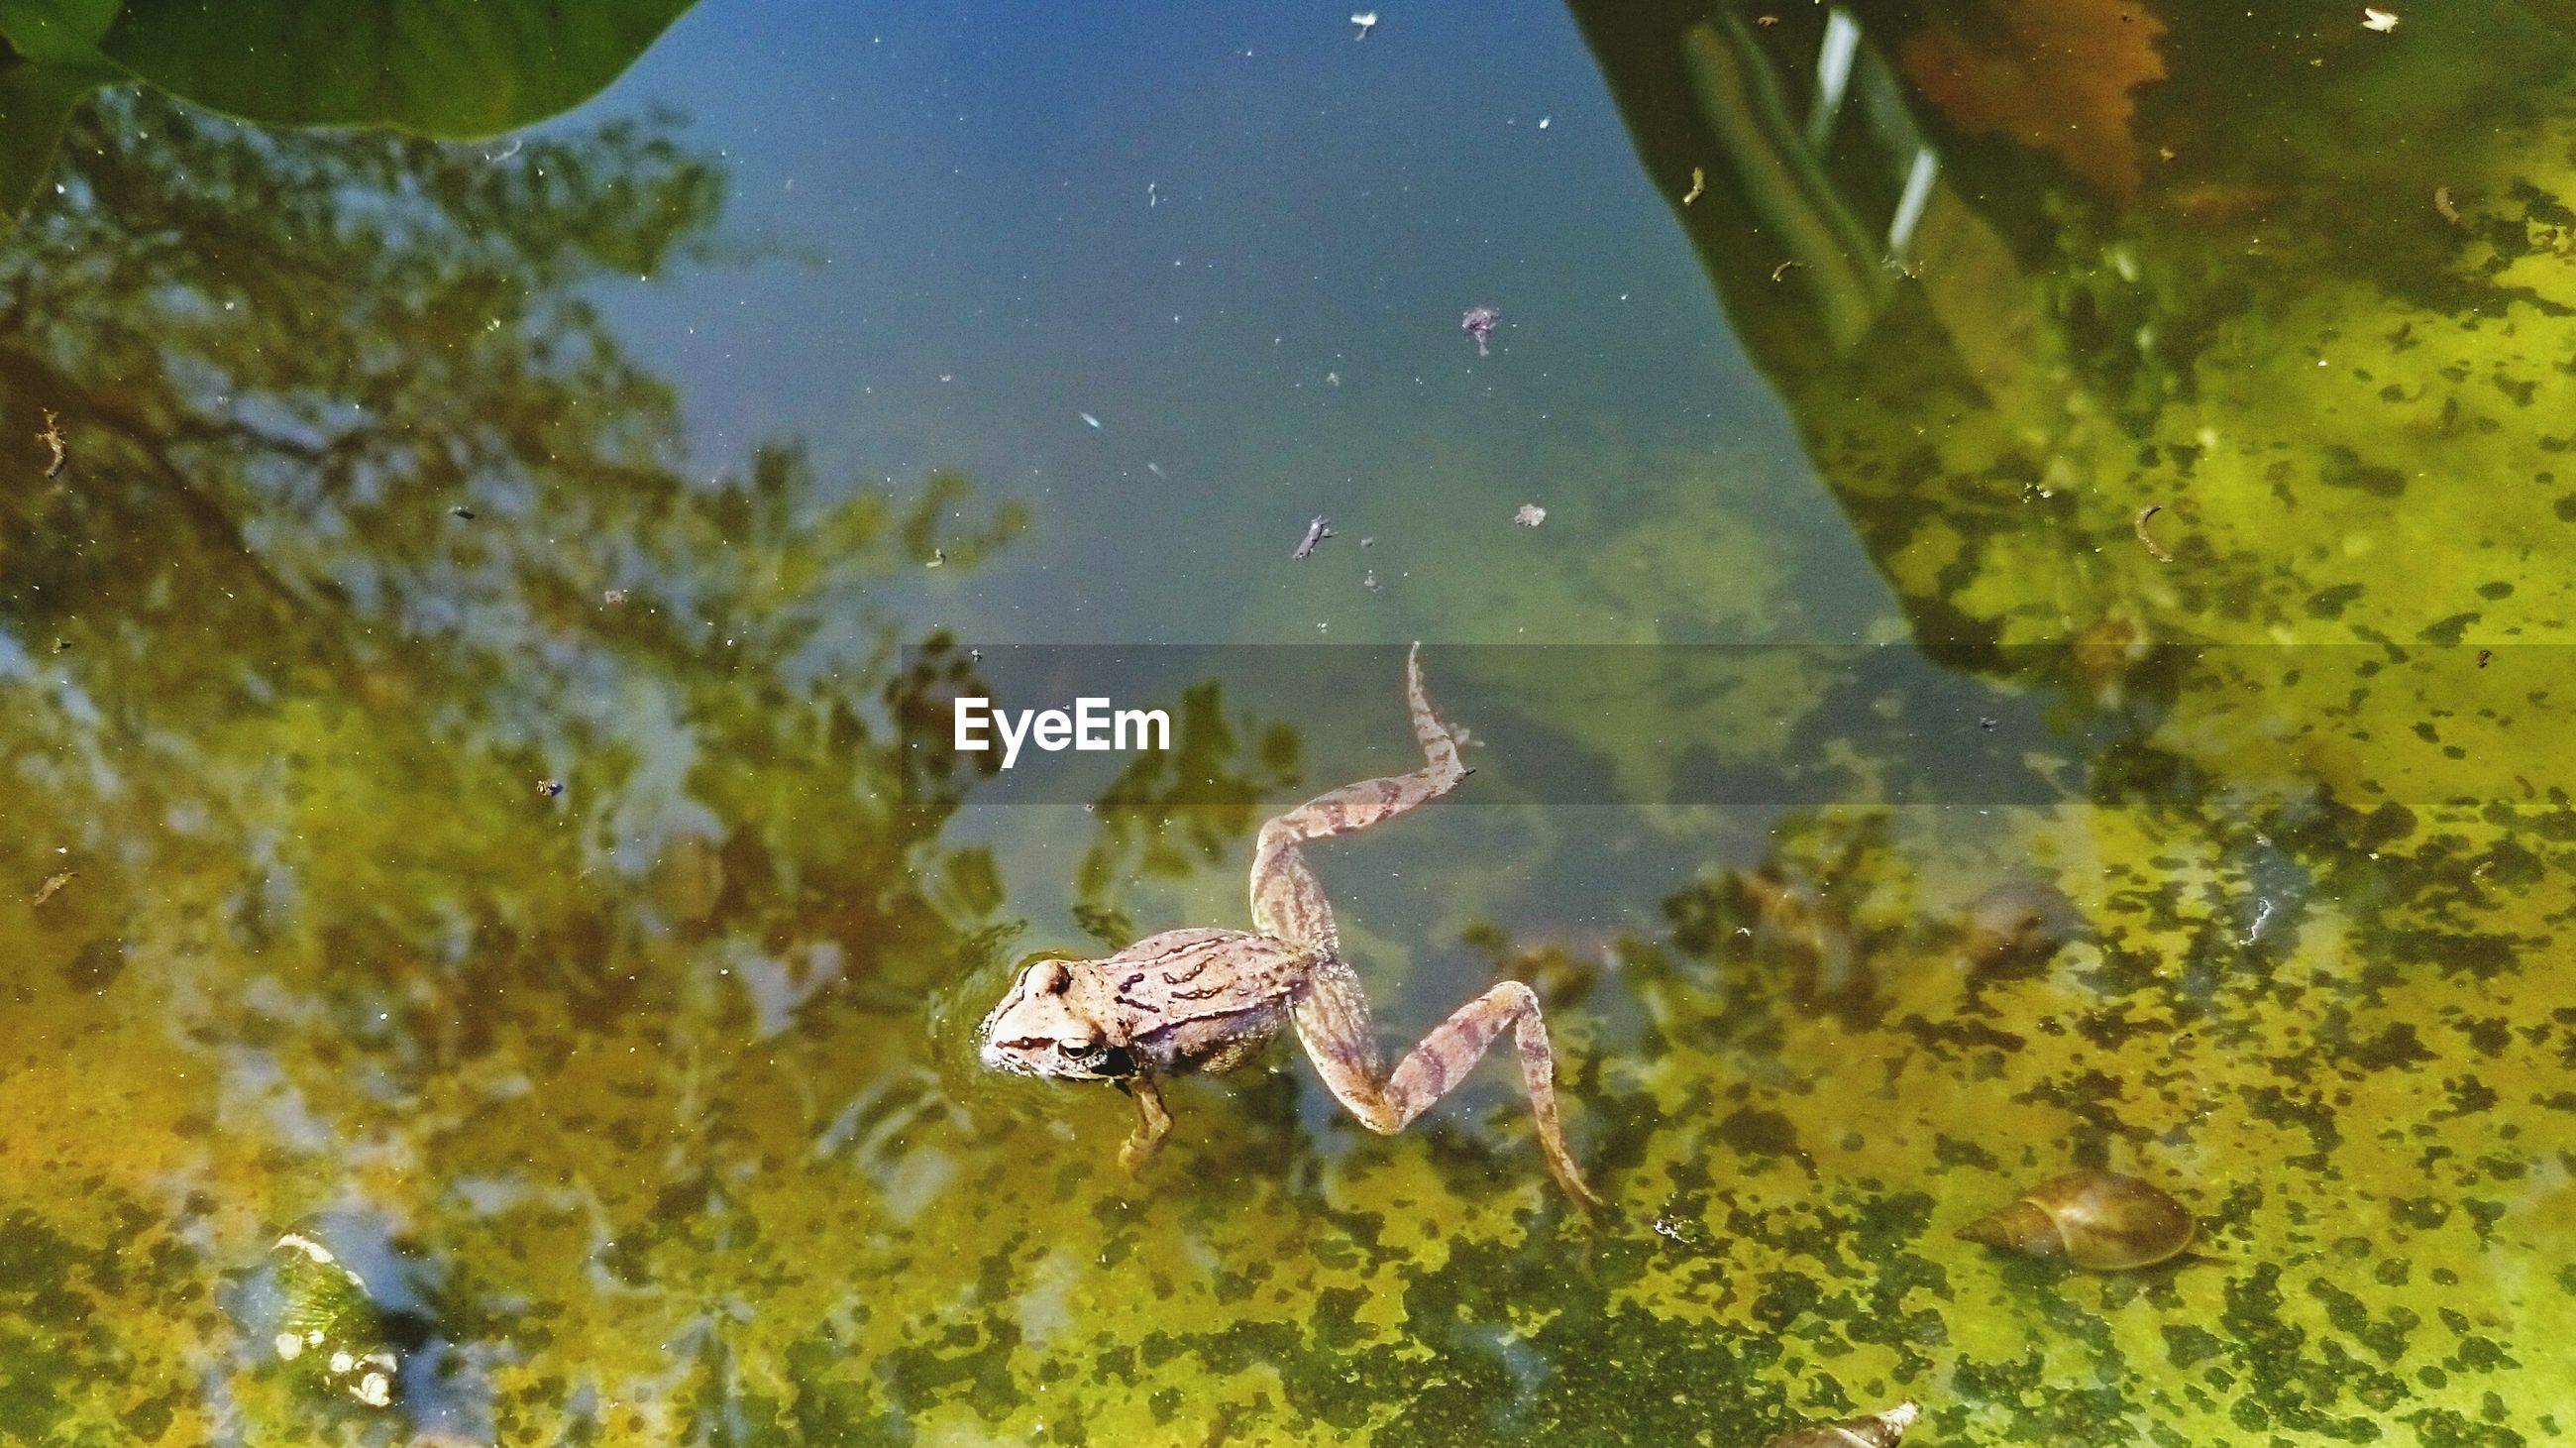 High angle view of frog swimming in pond